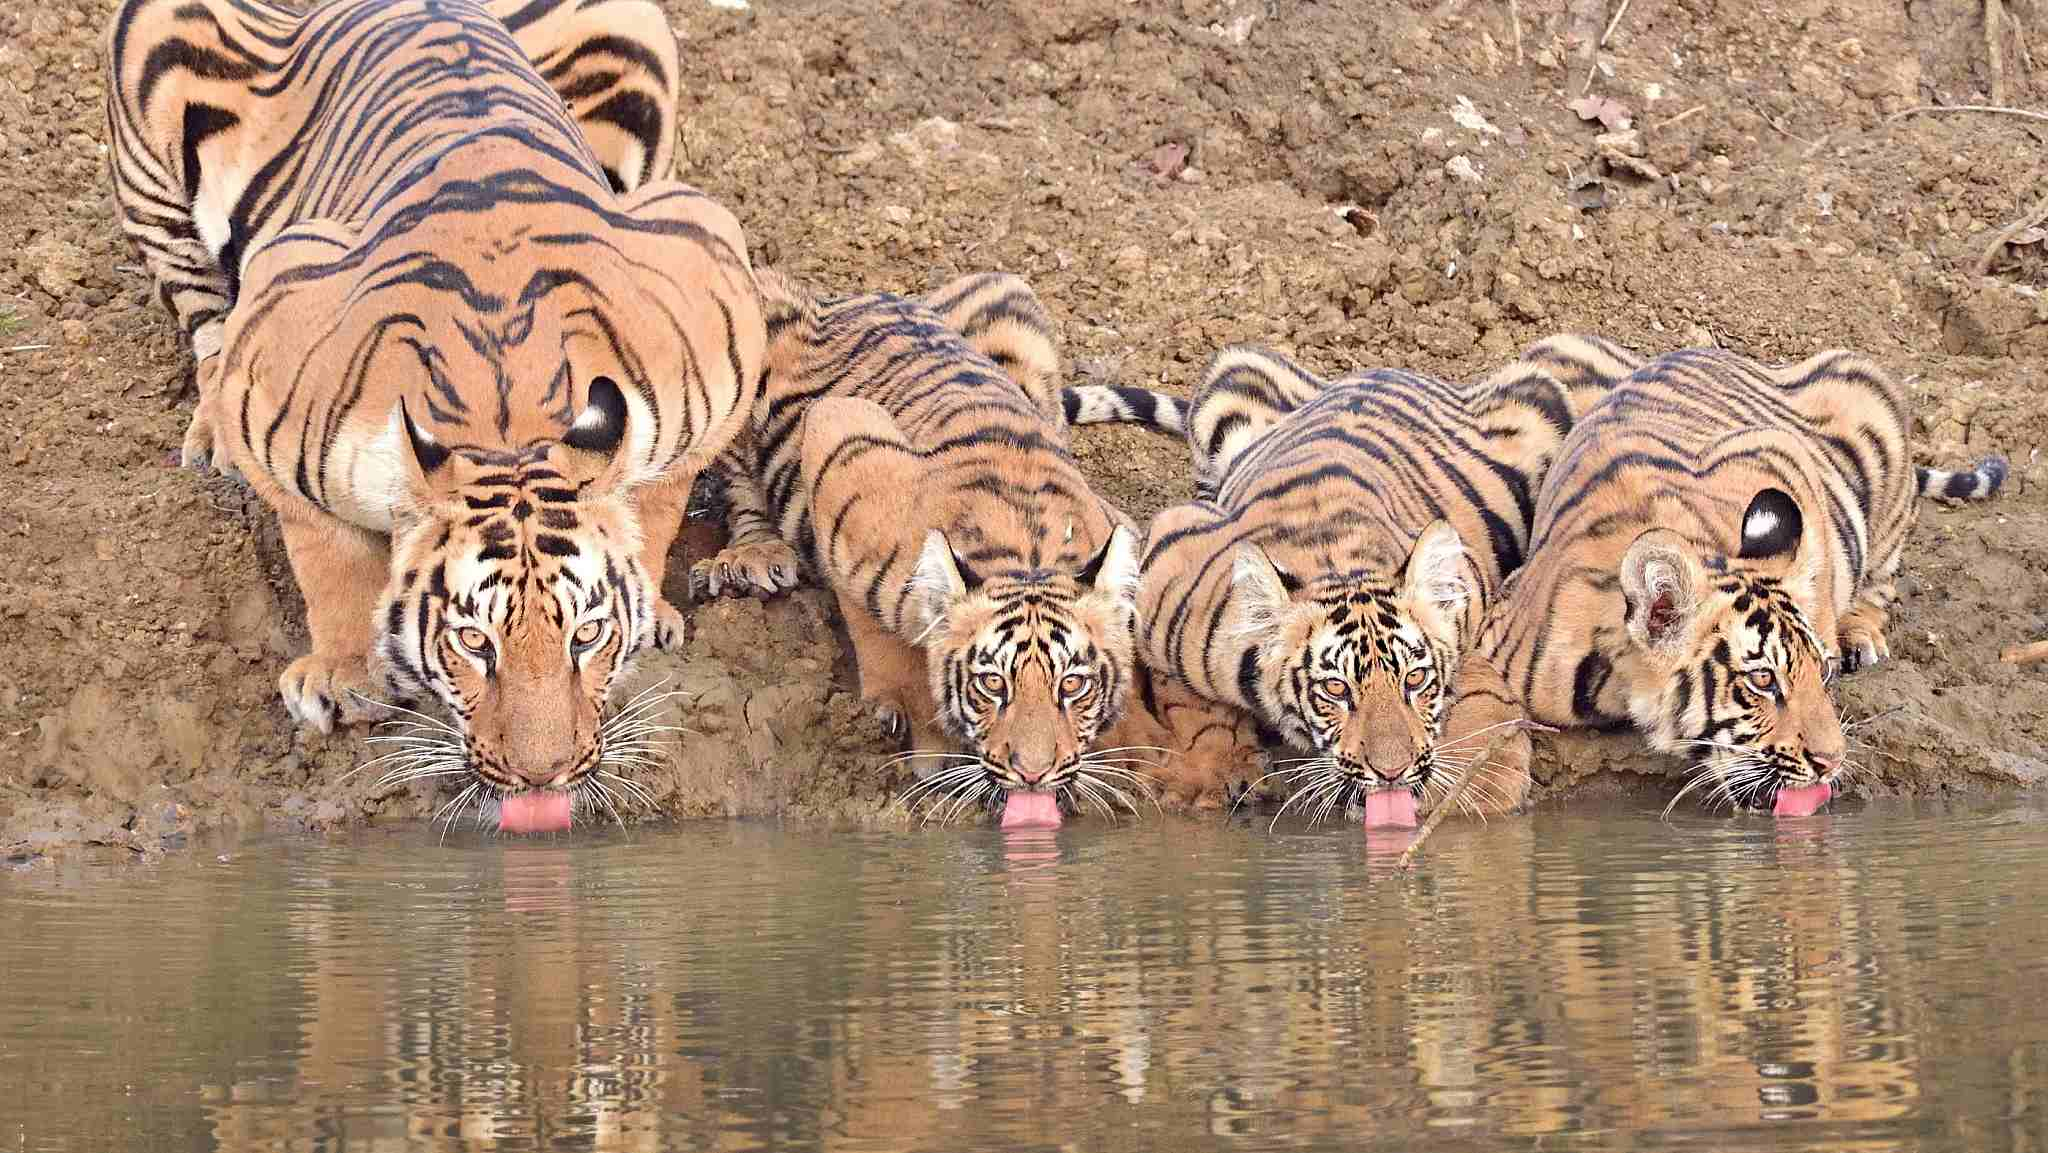 Man-eating tigress shot dead in India after allegedly killing 13